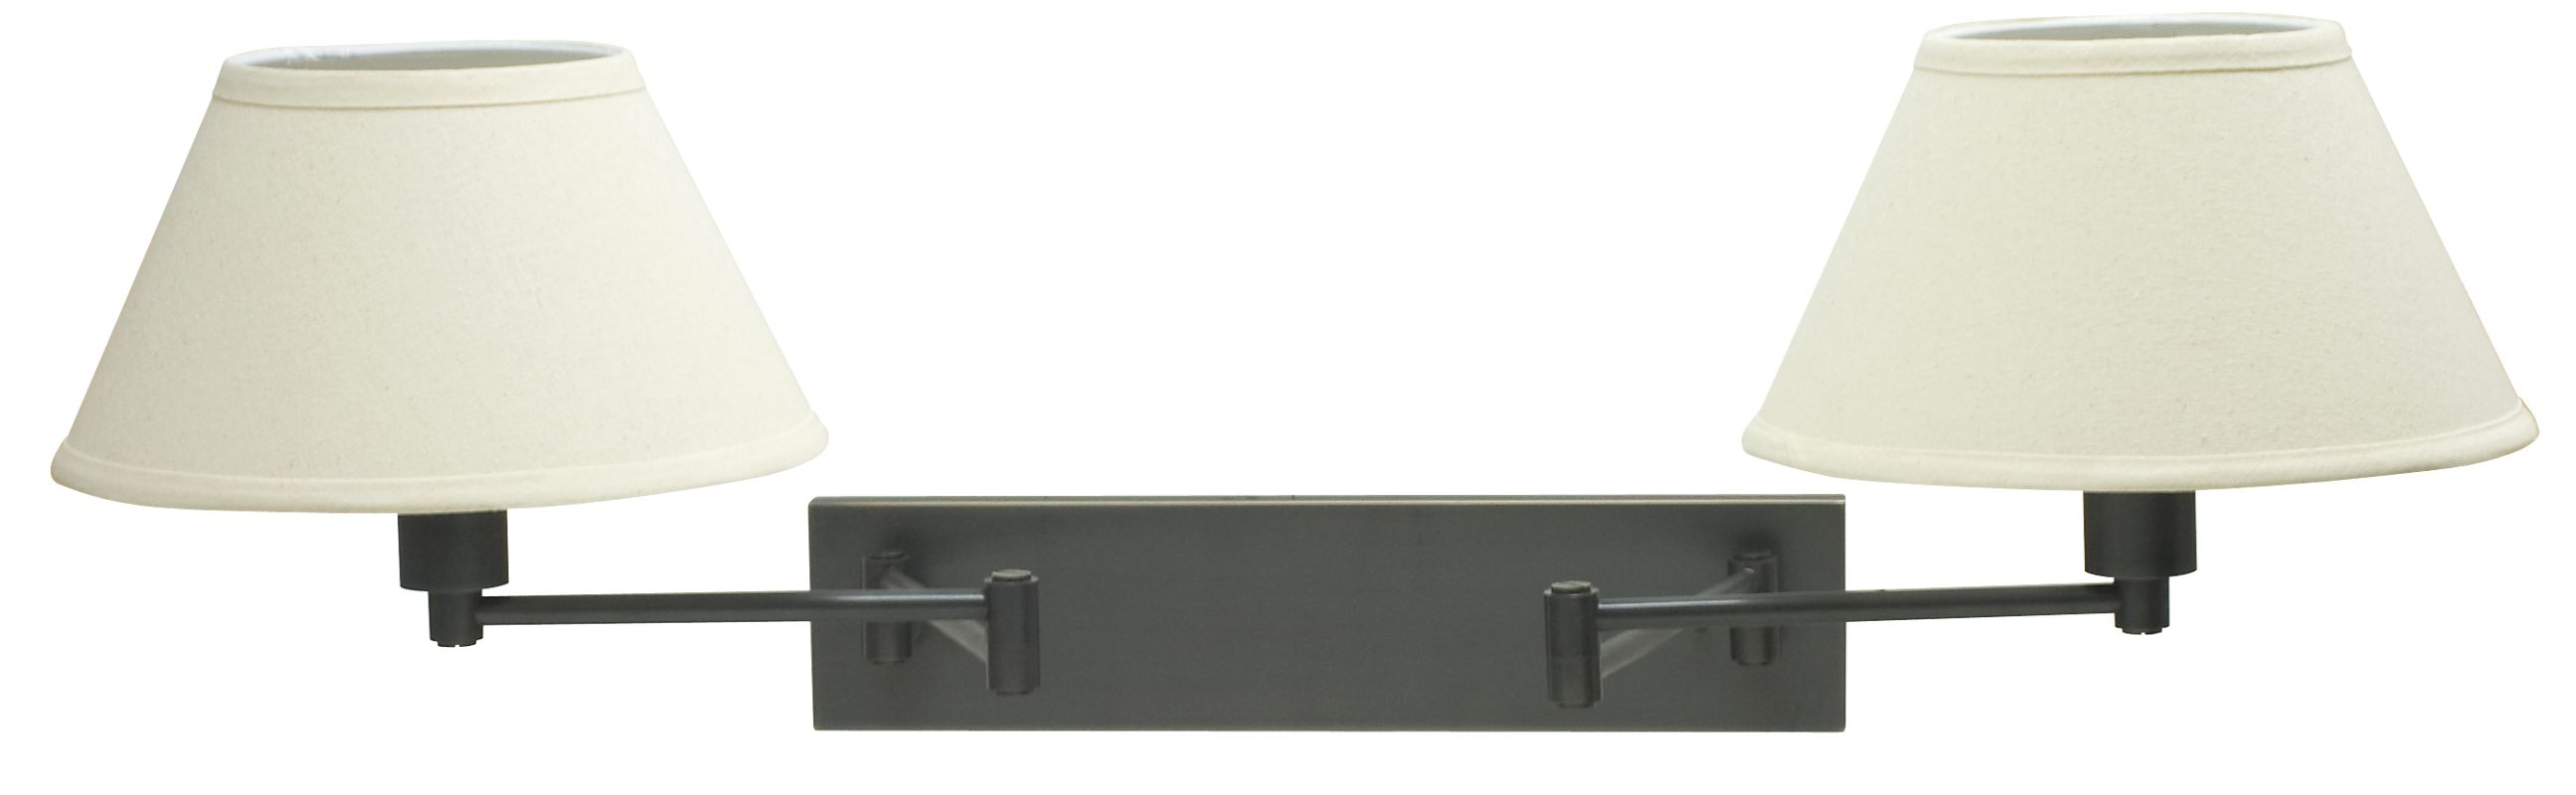 House of Troy WS14-2 Home / Office 2 Light Double Swing Arm Wall